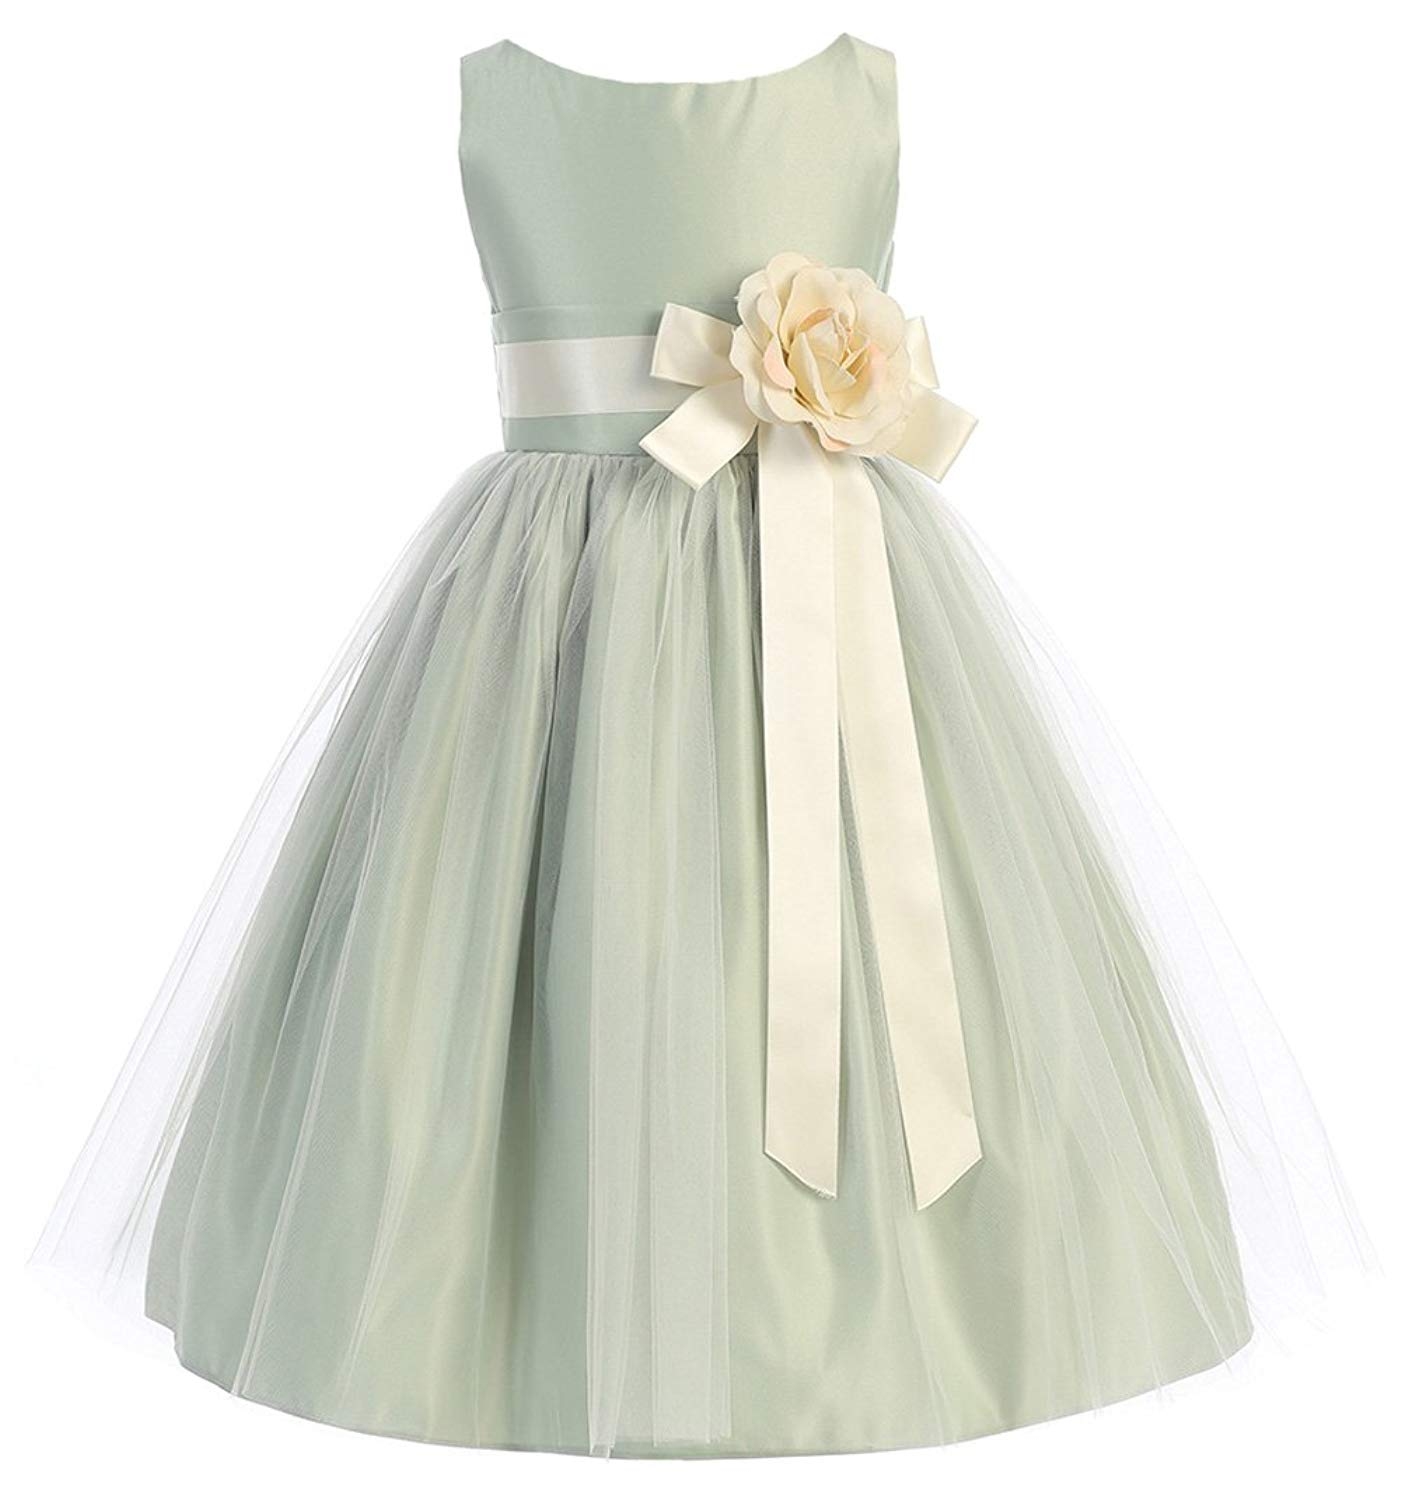 696fecee576 Get Quotations · Baby Toddler Flower Girl Vintage Satin Tulle Special  Occasion Dress - 11 Colors